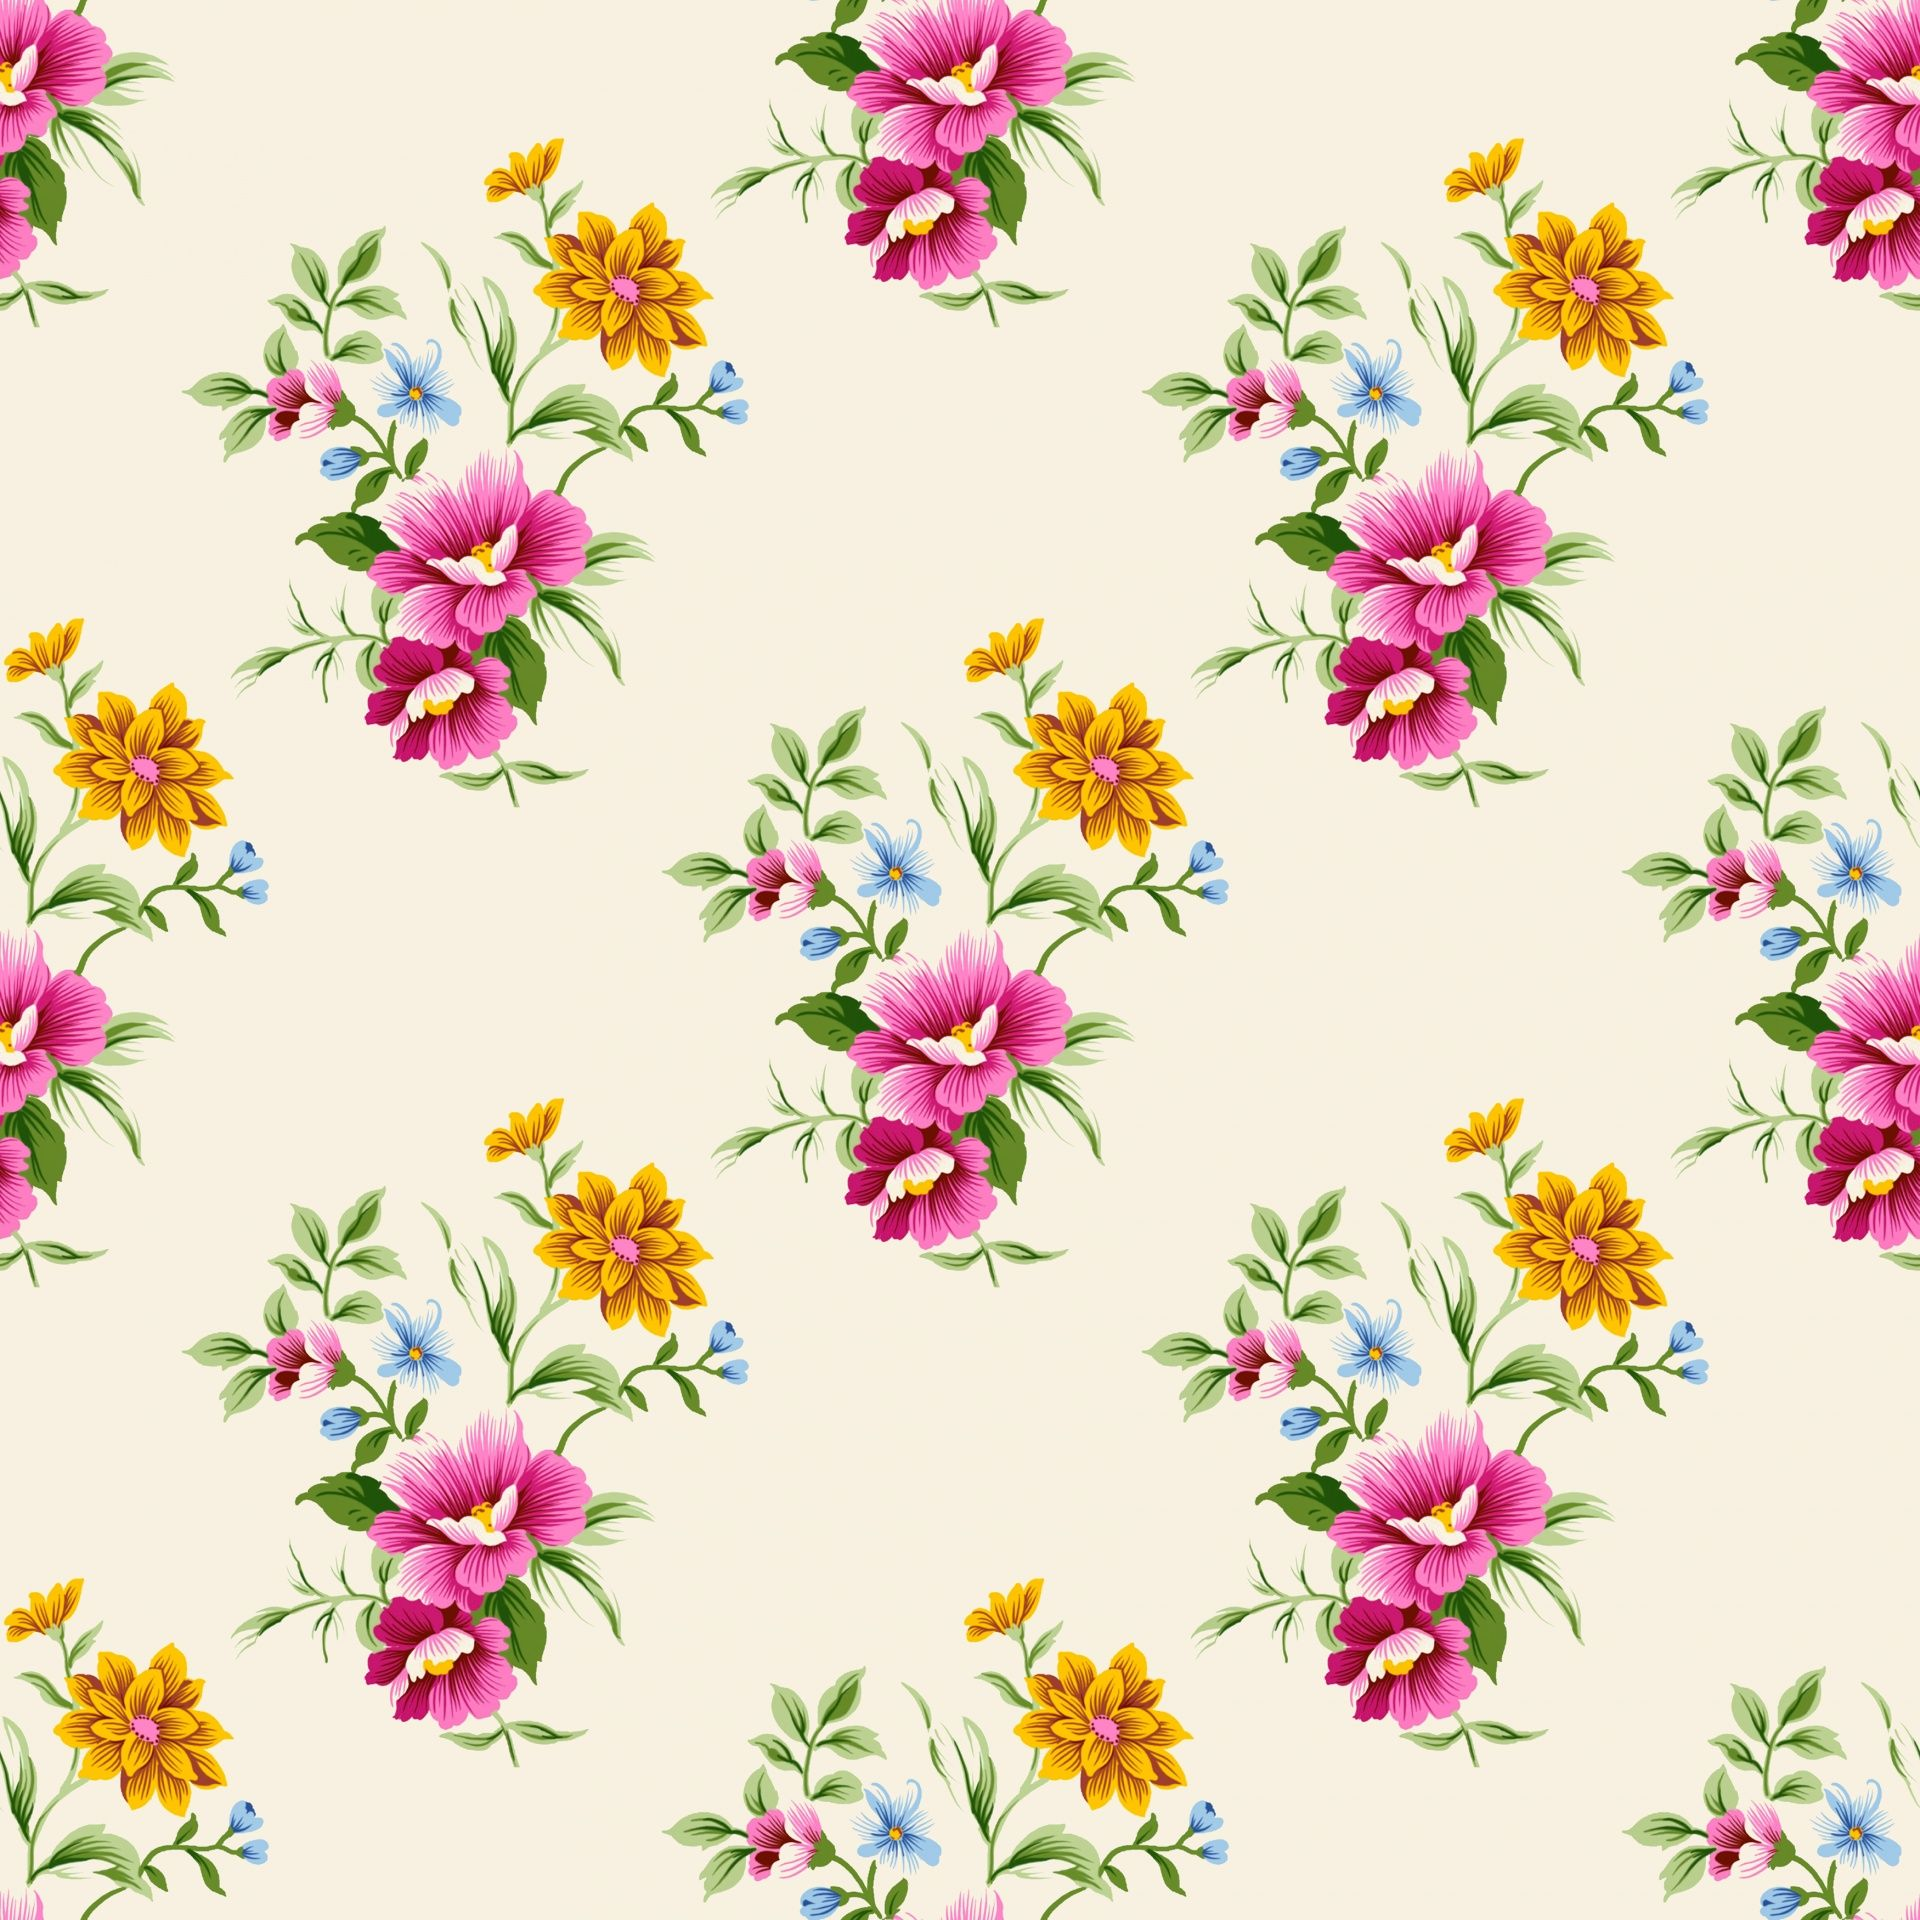 Flowers Vintage Floral Background Free Stock Photo Vintage